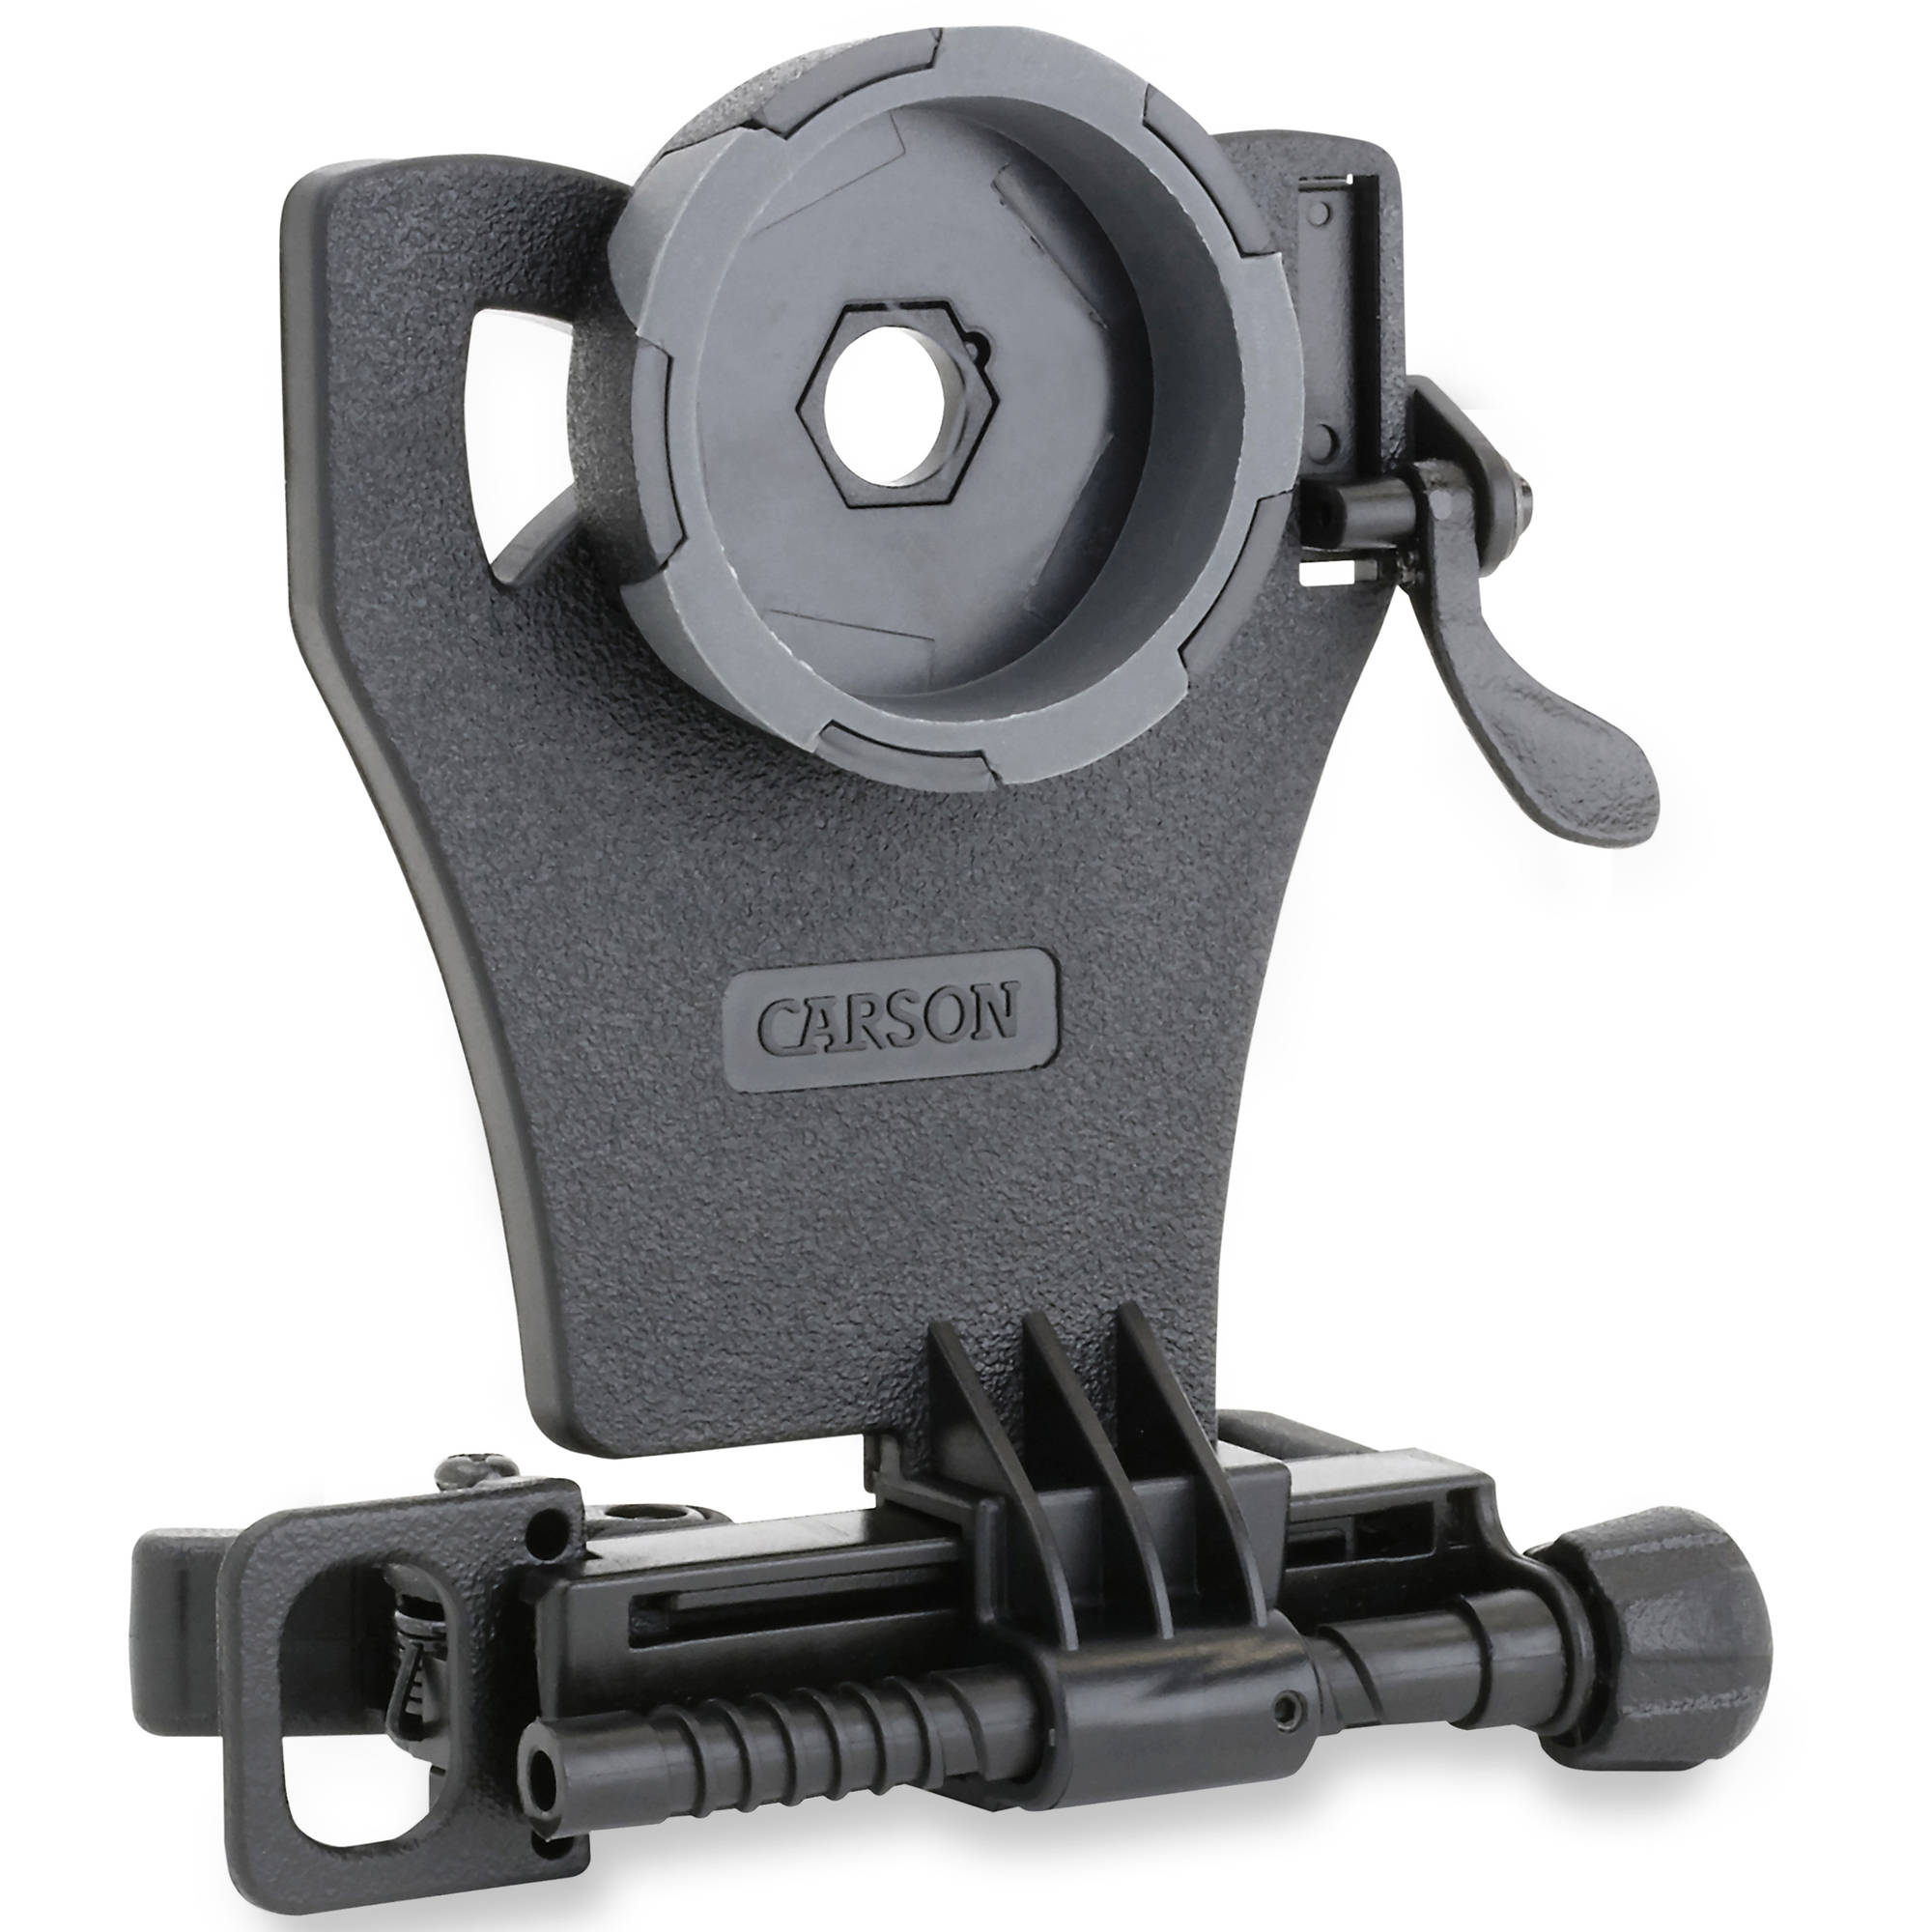 Carson HookUpz Universal Smartphone Digiscoping Adapter for Most Full Sized Binoculars